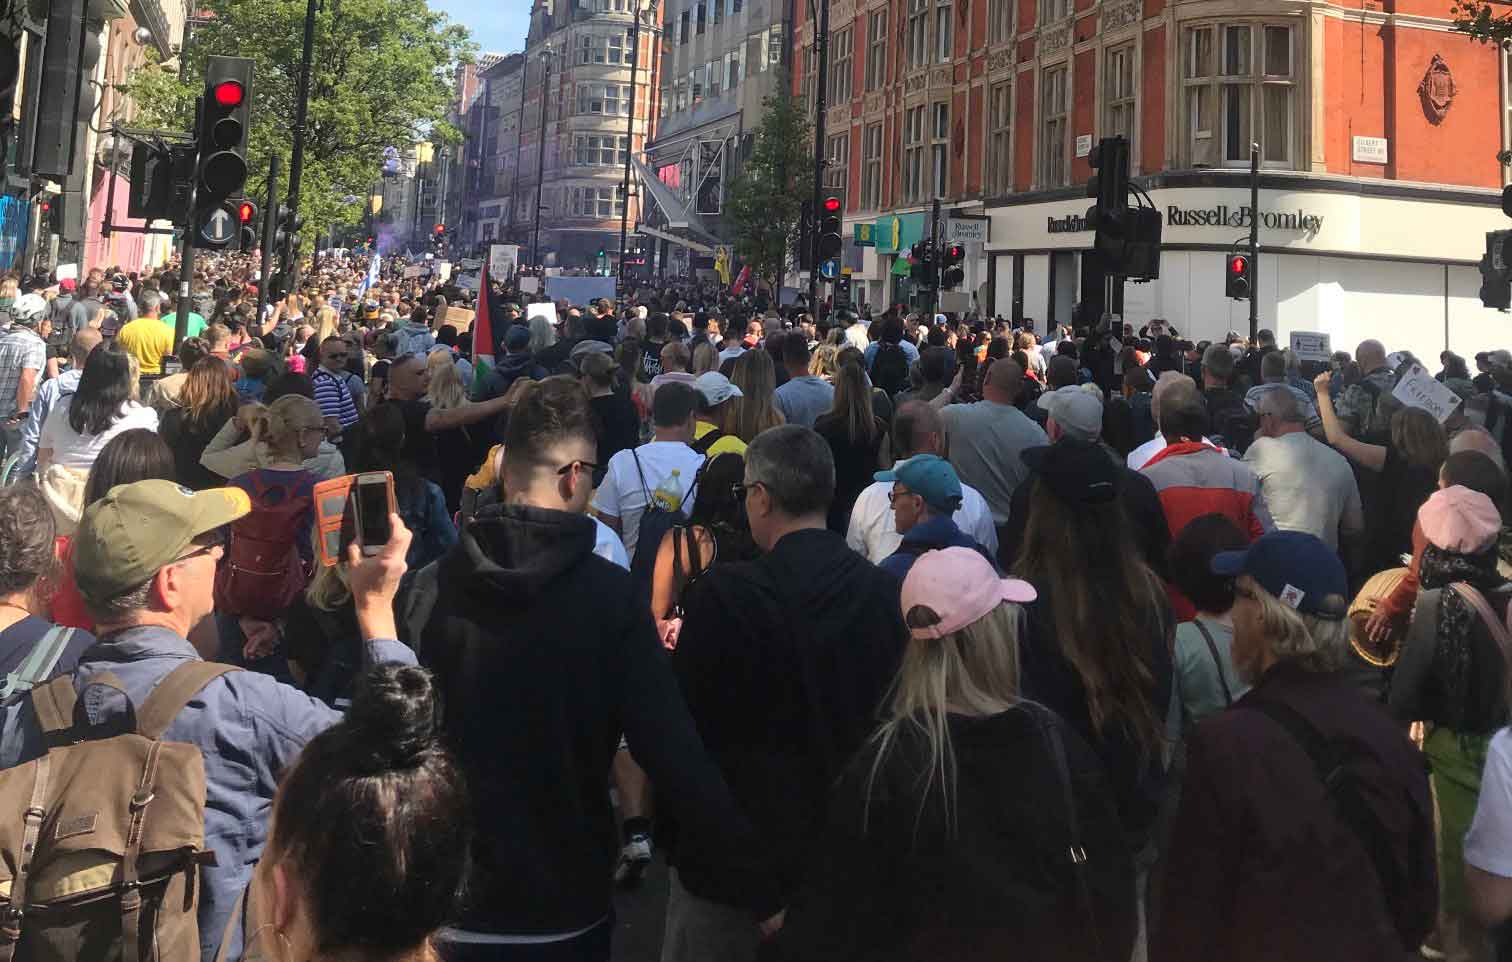 1 Million March For Medical Freedom In London, England! Mainstream Media Almost Totally Silent.